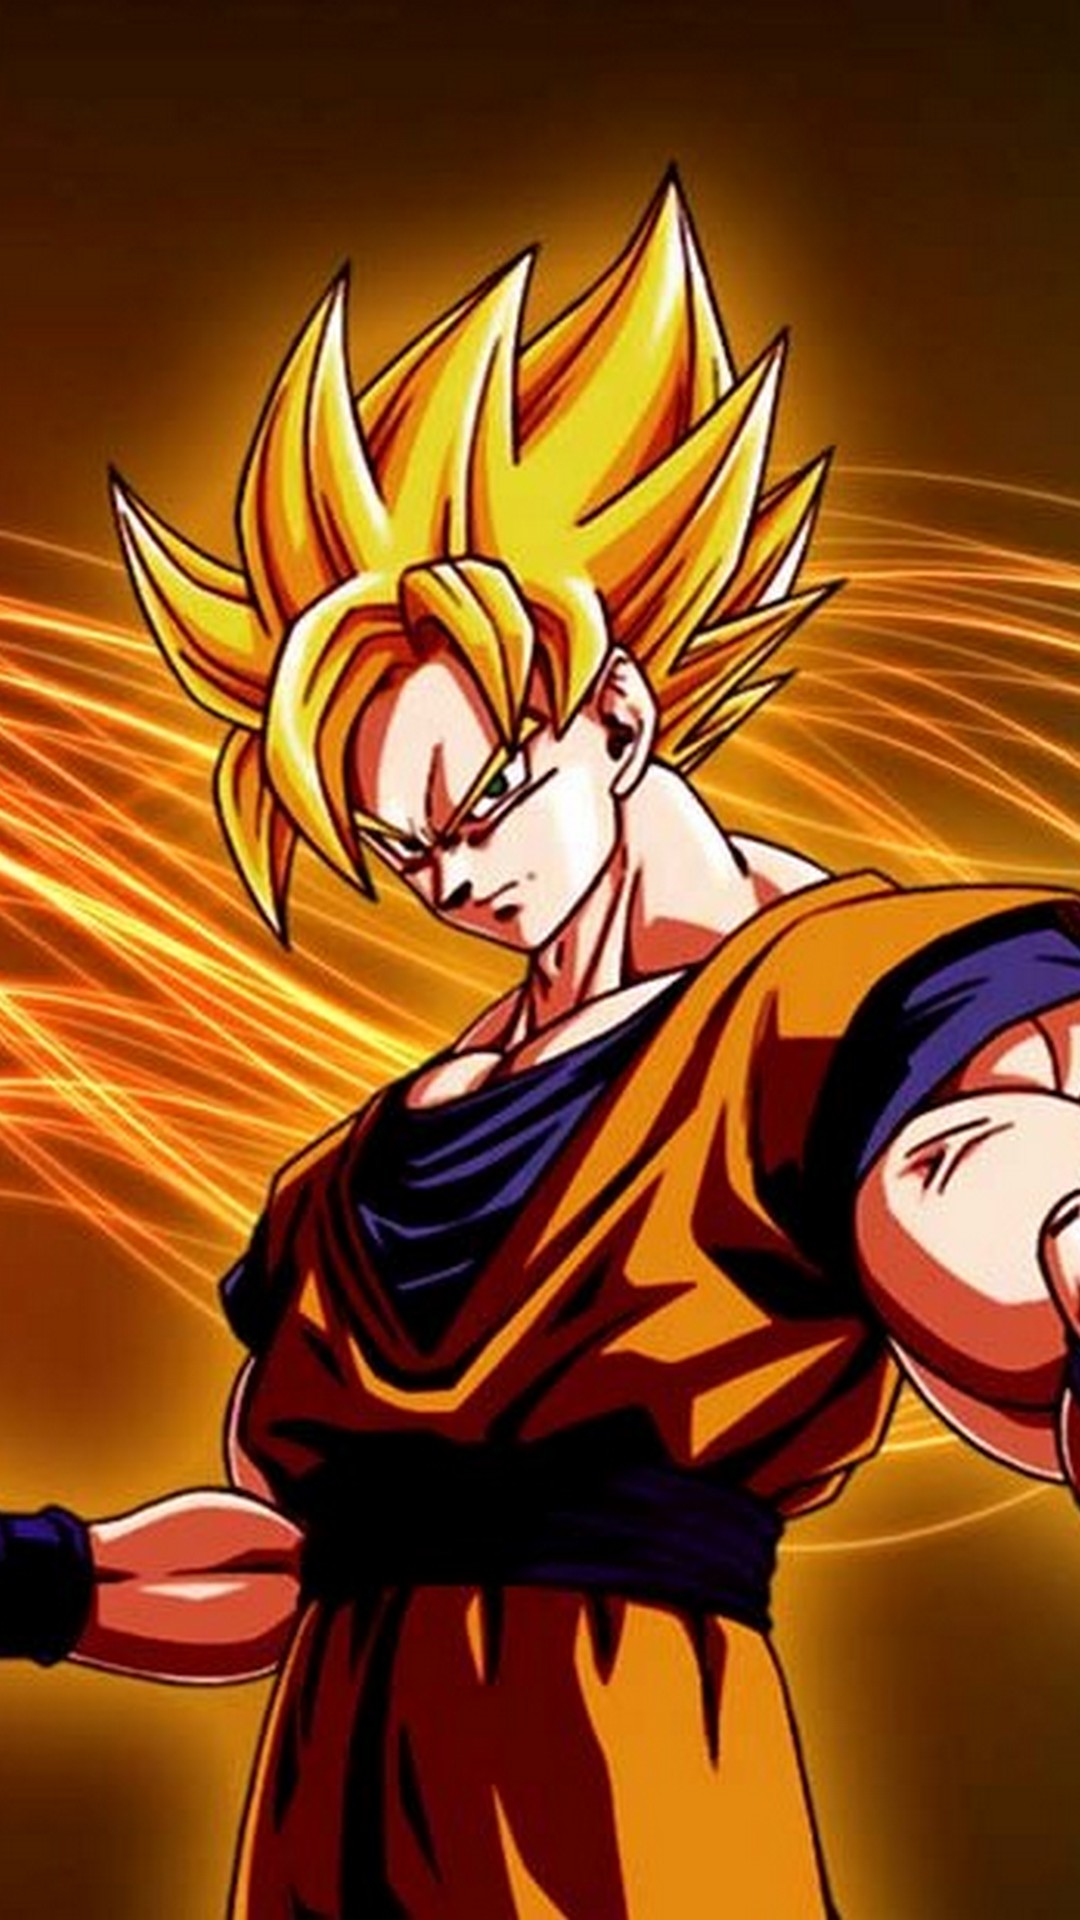 Goku Super Saiyan Wallpaper Android With Hd Resolution Super Saiyan Wallpaper Dragon Ball Z 1080x1920 Wallpaper Teahub Io